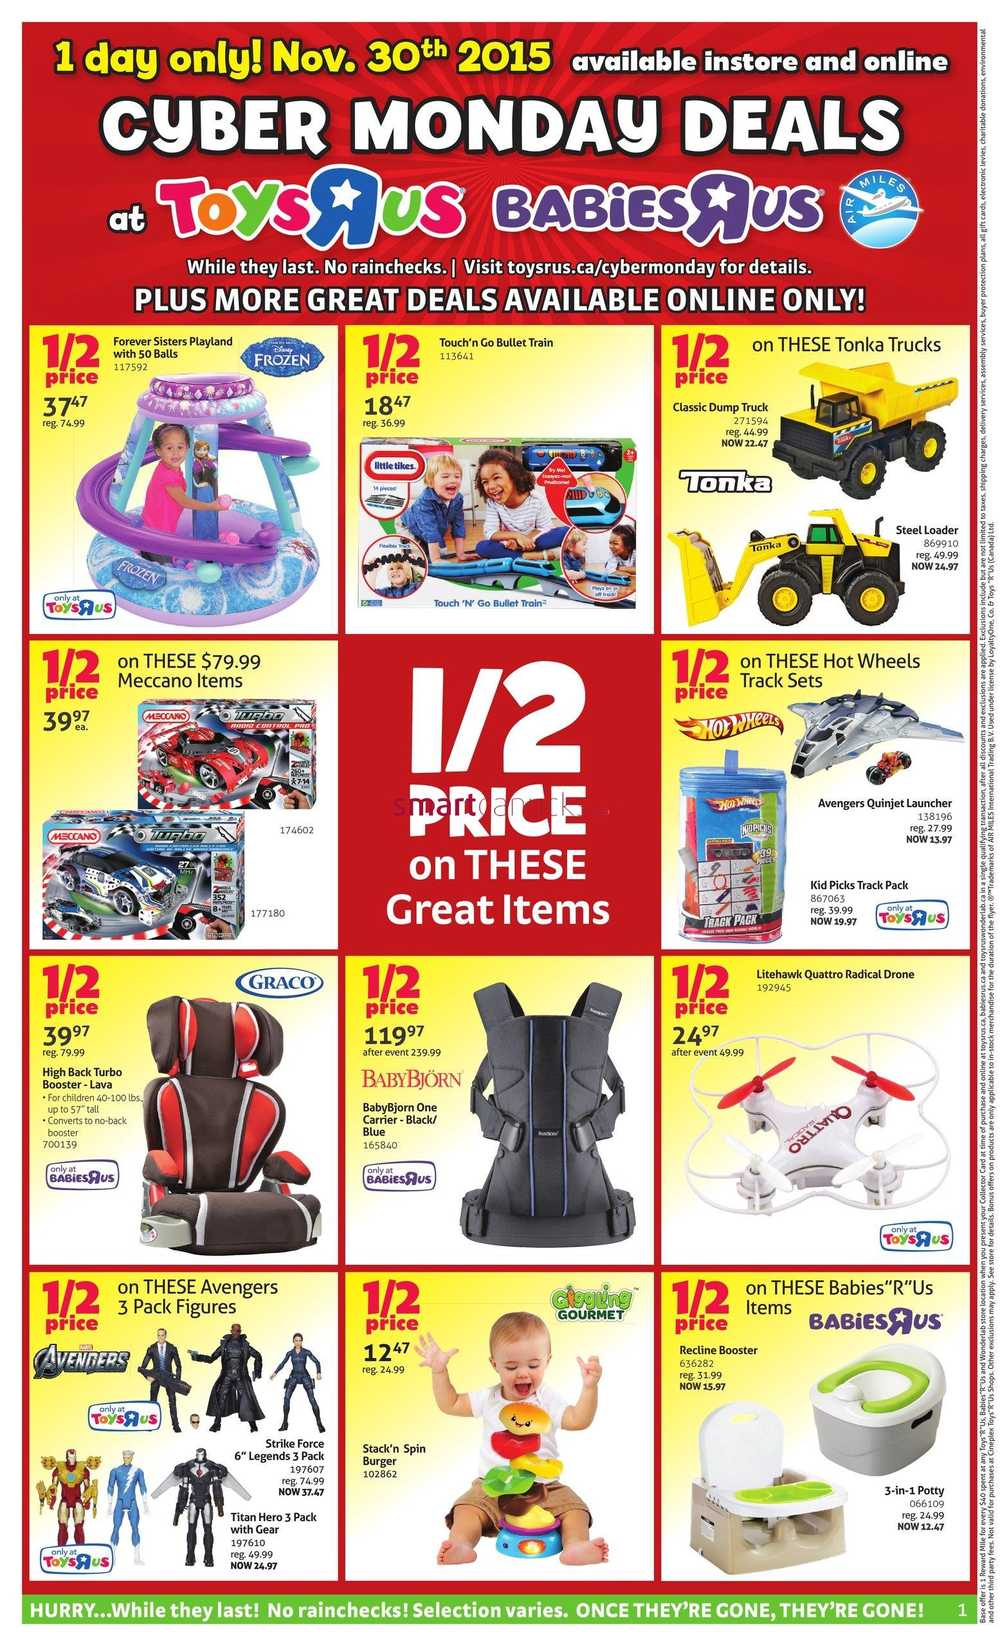 toys r us cyber monday sale flyer 2015